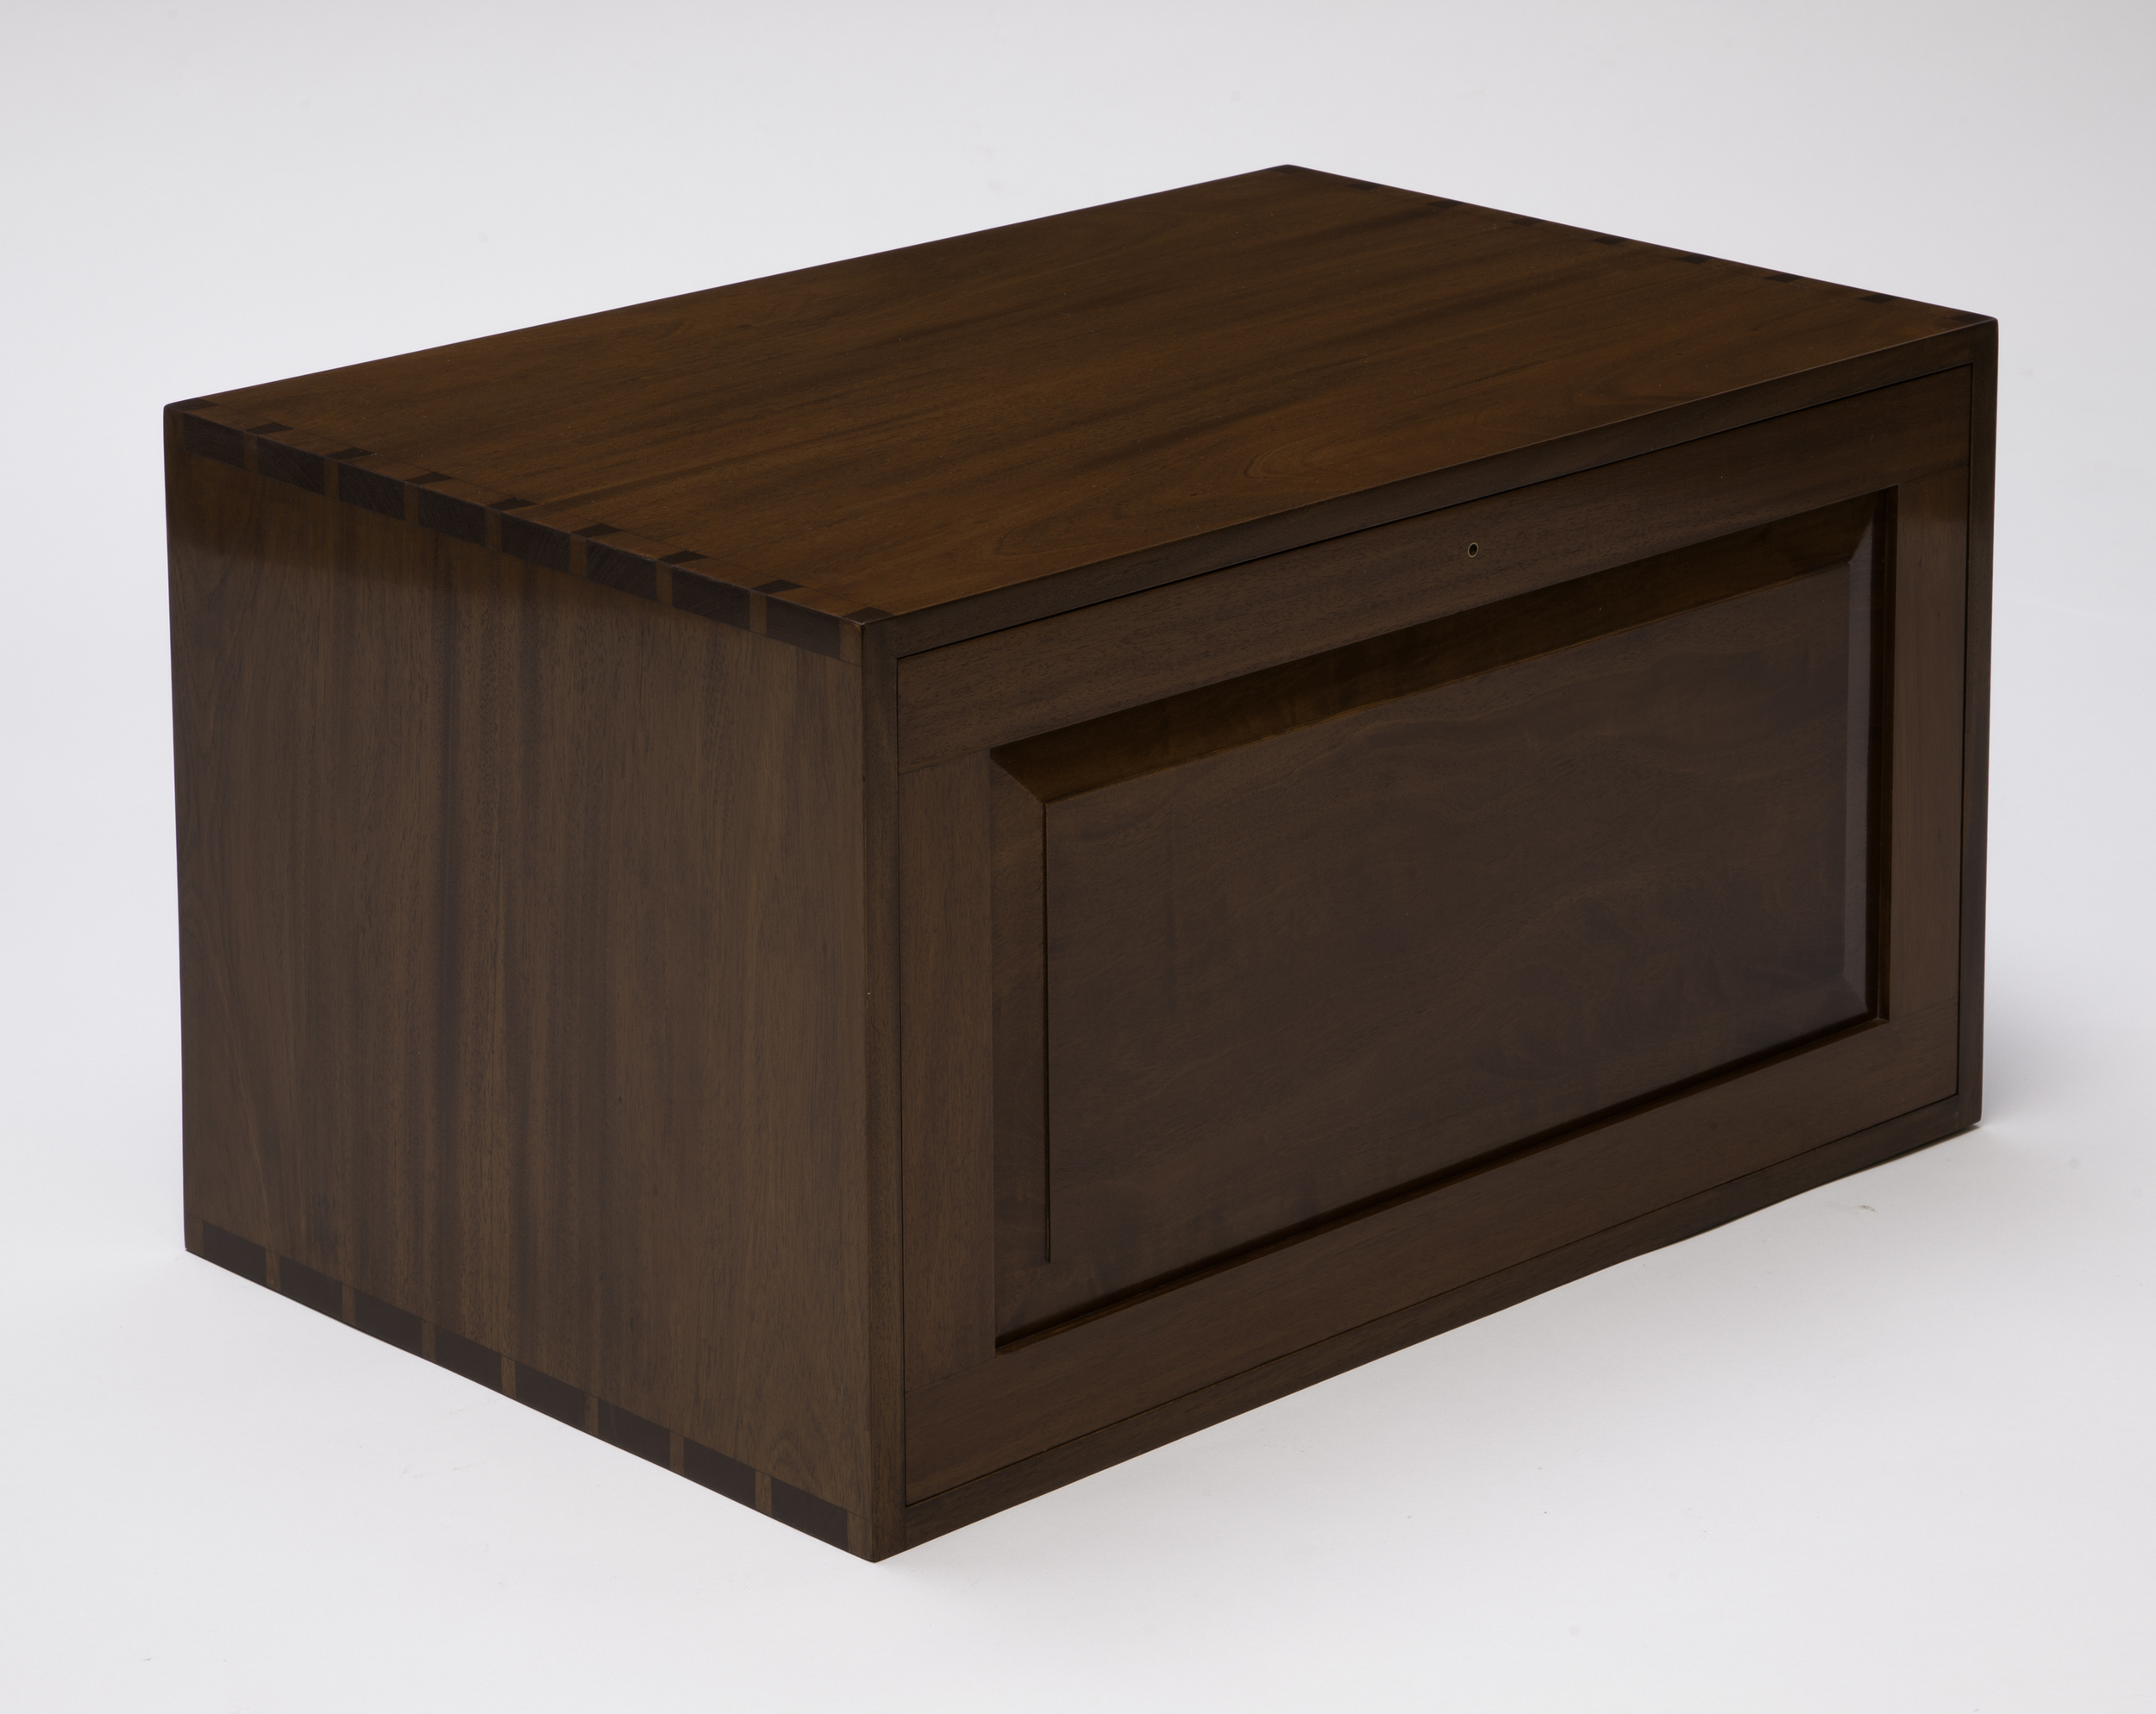 """This project started as a woodworks toolbox, but I couldn't bring myself to put woodworking tools in it, so my wife took it over as a cabinet to store her sewing supplies and tools.Mahogany is the primary wood used for the case and lid, maple for drawer dividers and cabinet back, pine for drawer sides, backs and bottoms.The case and drawers are joined together with hand cut dovetails. Drawer bottoms are raised panels on three sides and housed in grooves running along the drawer sides and fronts, and are screwed to drawer backs. Drawer pulls are maple Shaker style knobs turned on a lathe. The case back is ship lapped maple panels set in a rabbit and held in place with brass screws. There are five drawers of varying sizes. The lid fits in front of the drawers and is stored in the top of the case when not being used. A mahogany brown dye, mahogany brown stain,shellac and a truck load of elbow grease were used to finish the piece. This cabinet has already found a home, but we would be glad to work with you to create your own. This cabinet priced out at $3000.00.Dimensions: 29"""" W x 16"""" H x 17"""" D. (Click on the picture to see how it was put together.)"""